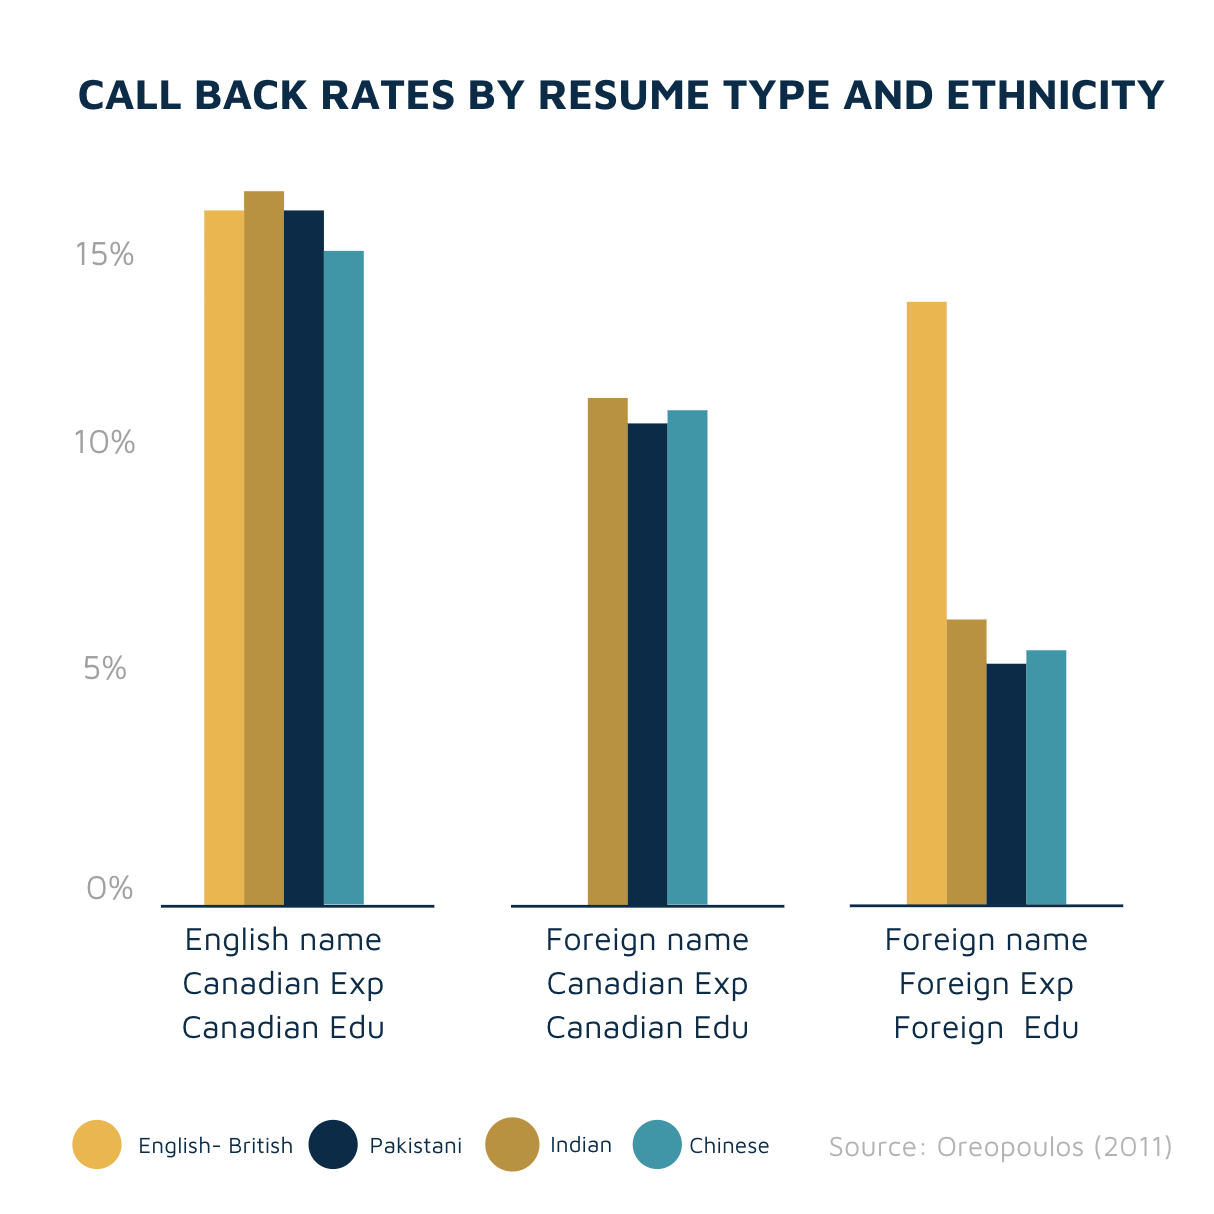 Callback rates by resume type and ethnicity